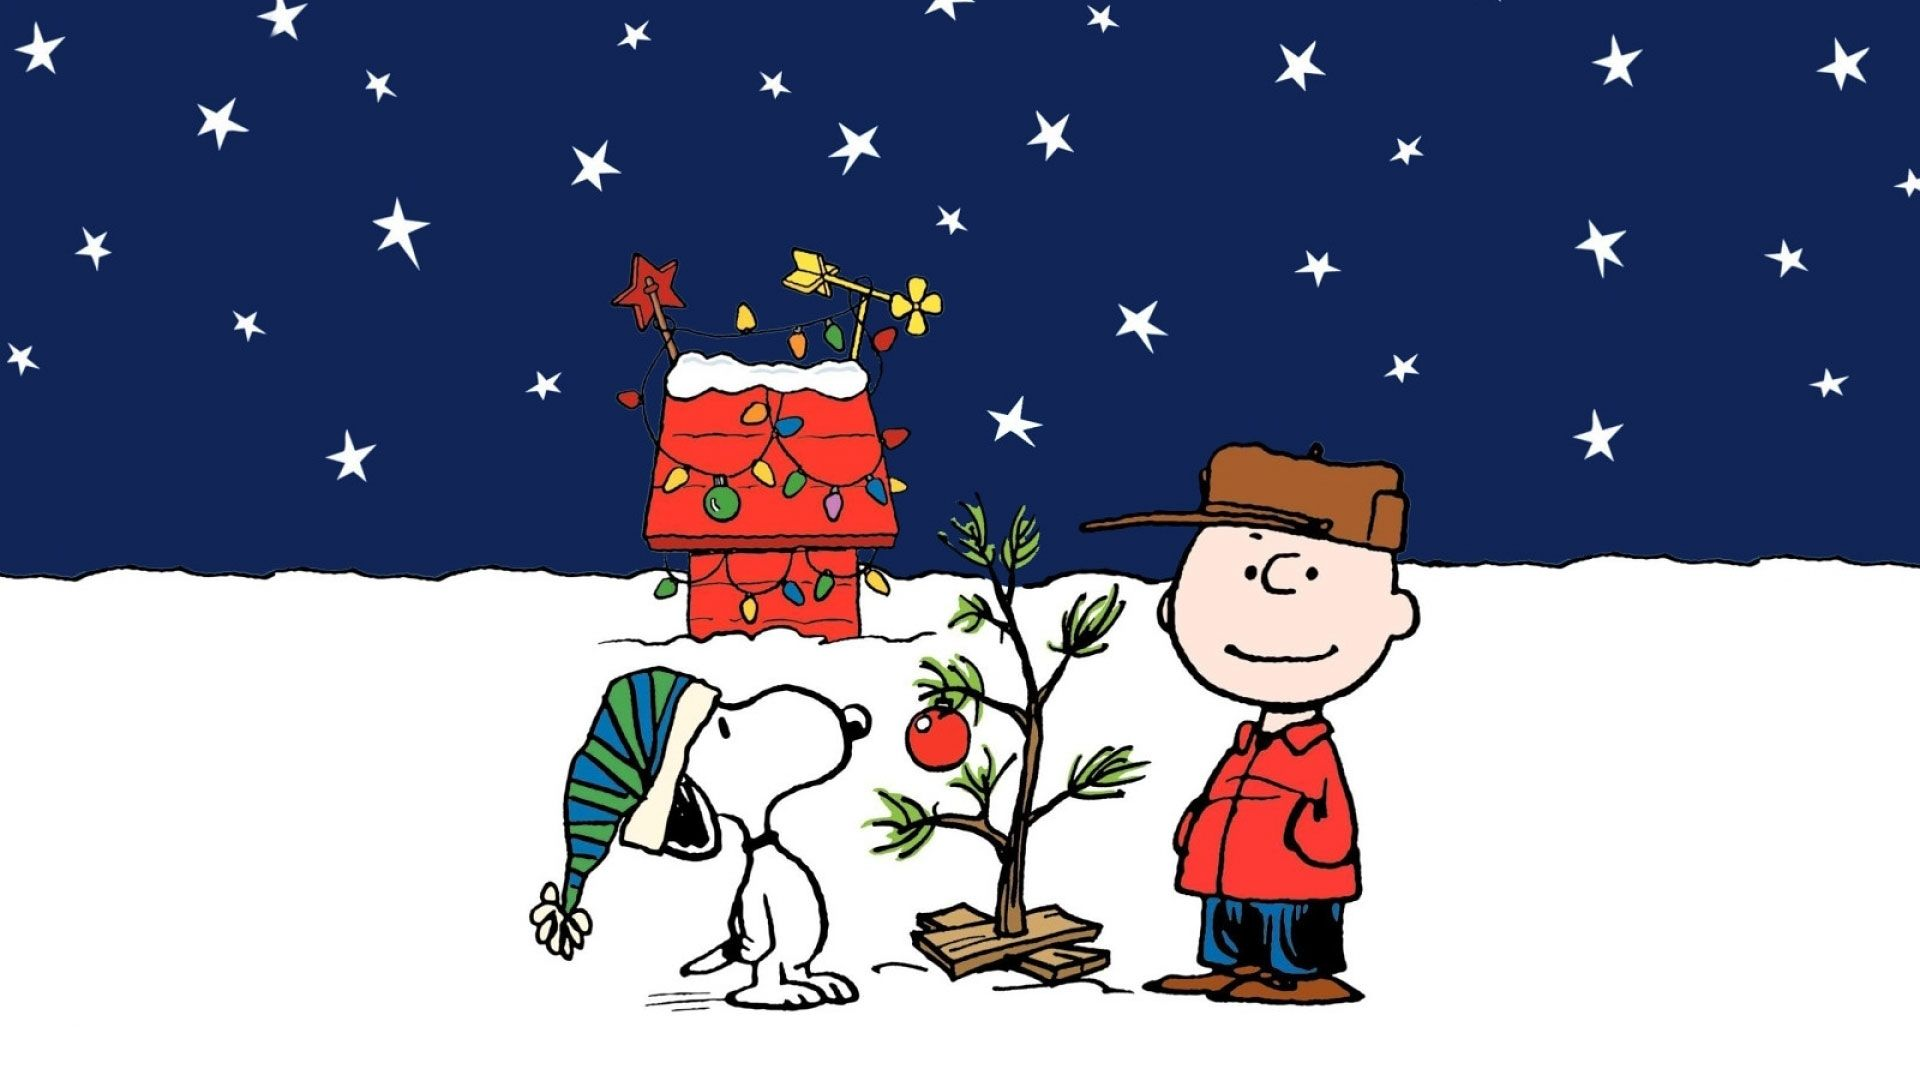 Peanuts Christmas Desktop Wallpaper Download Christmas 1920x1080